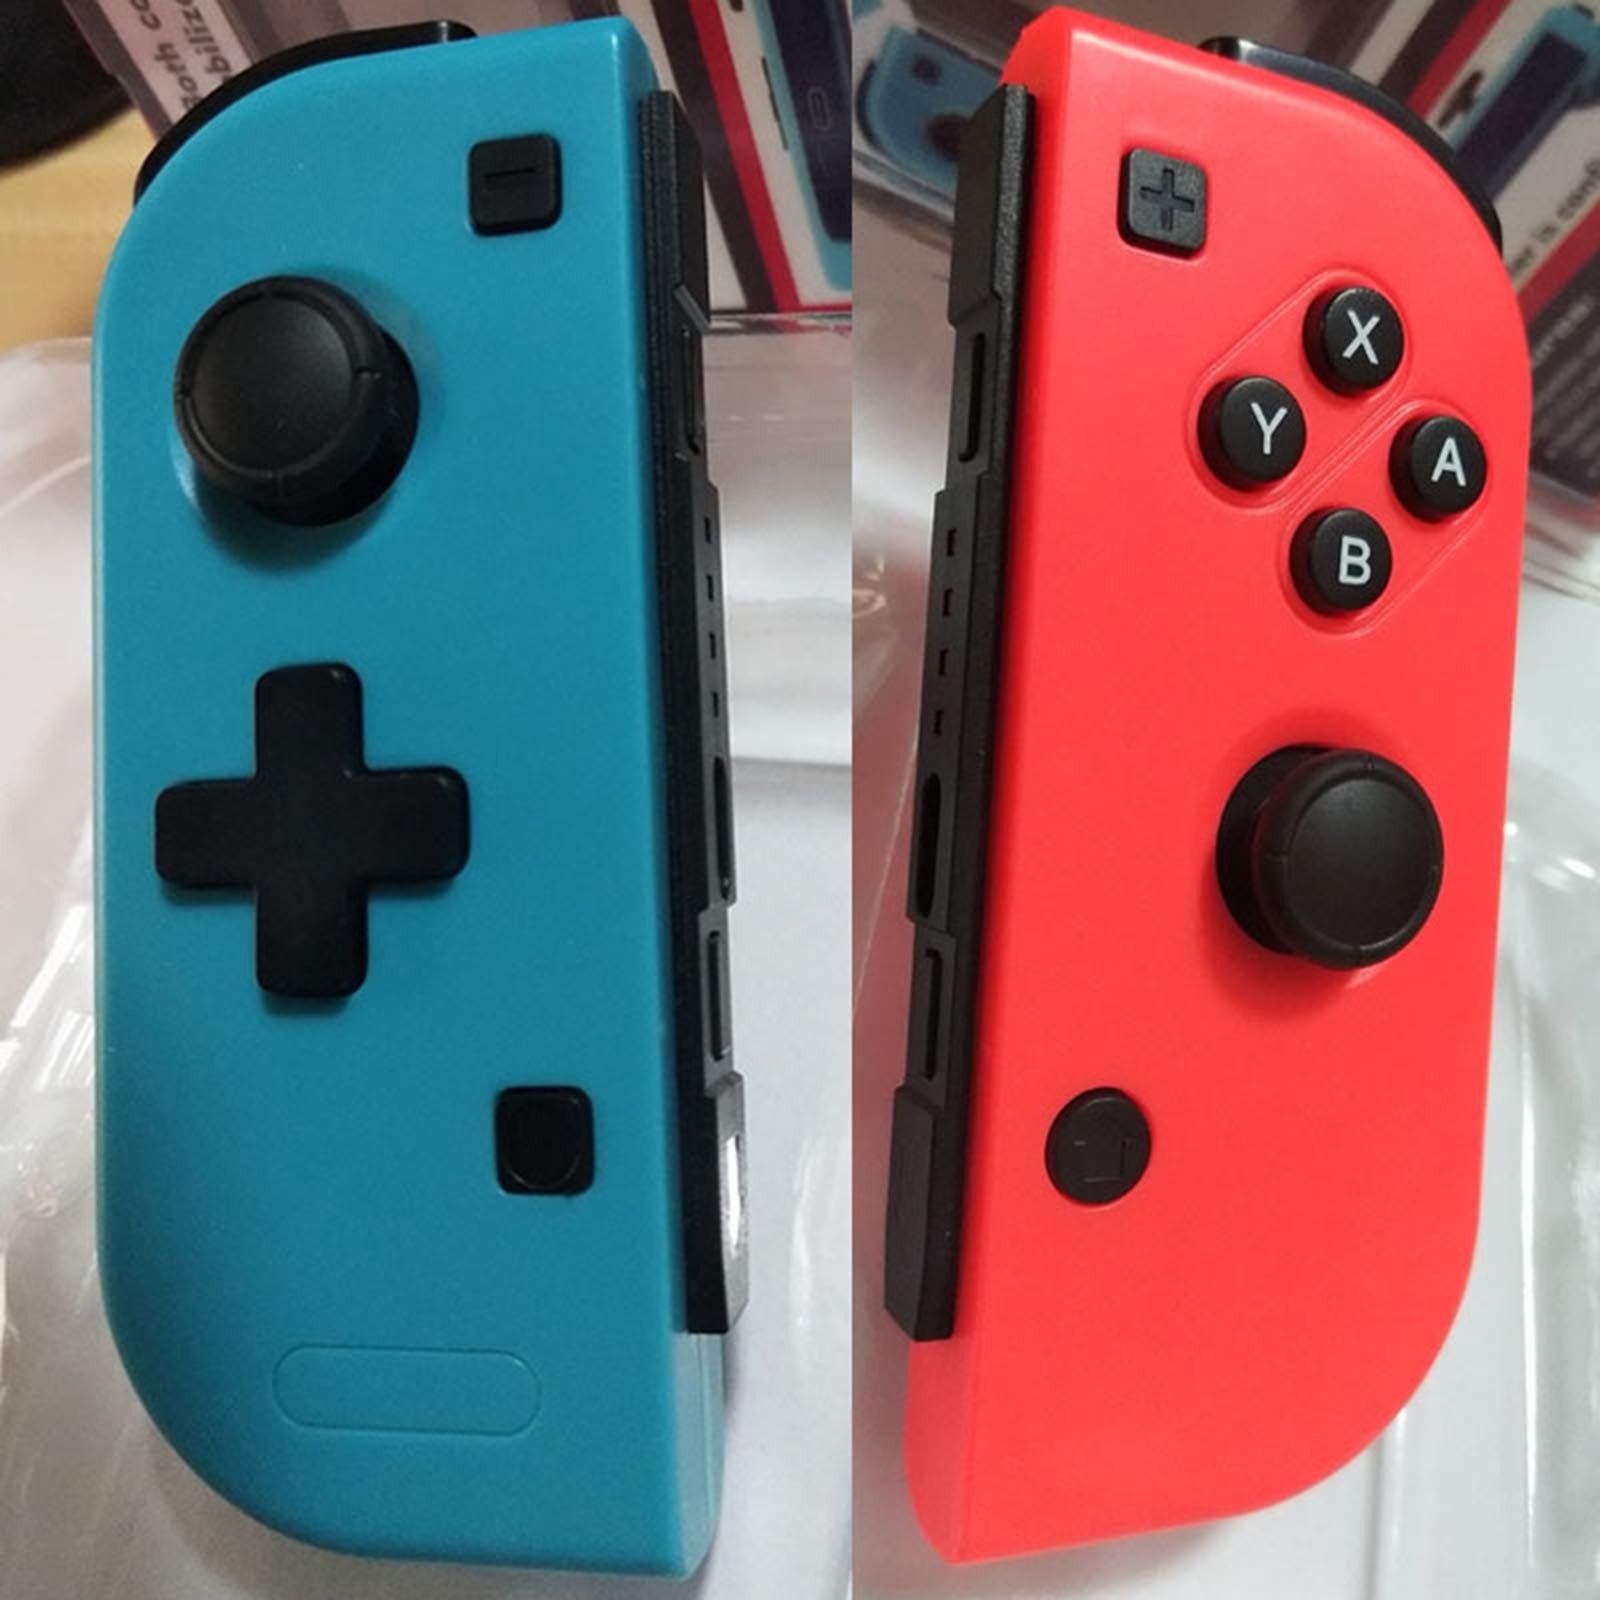 XBERSTAR Wireless Game Controller Left Right Gamepad Joystick for Nintendo Switch Console by XBERSTAR (Image #2)